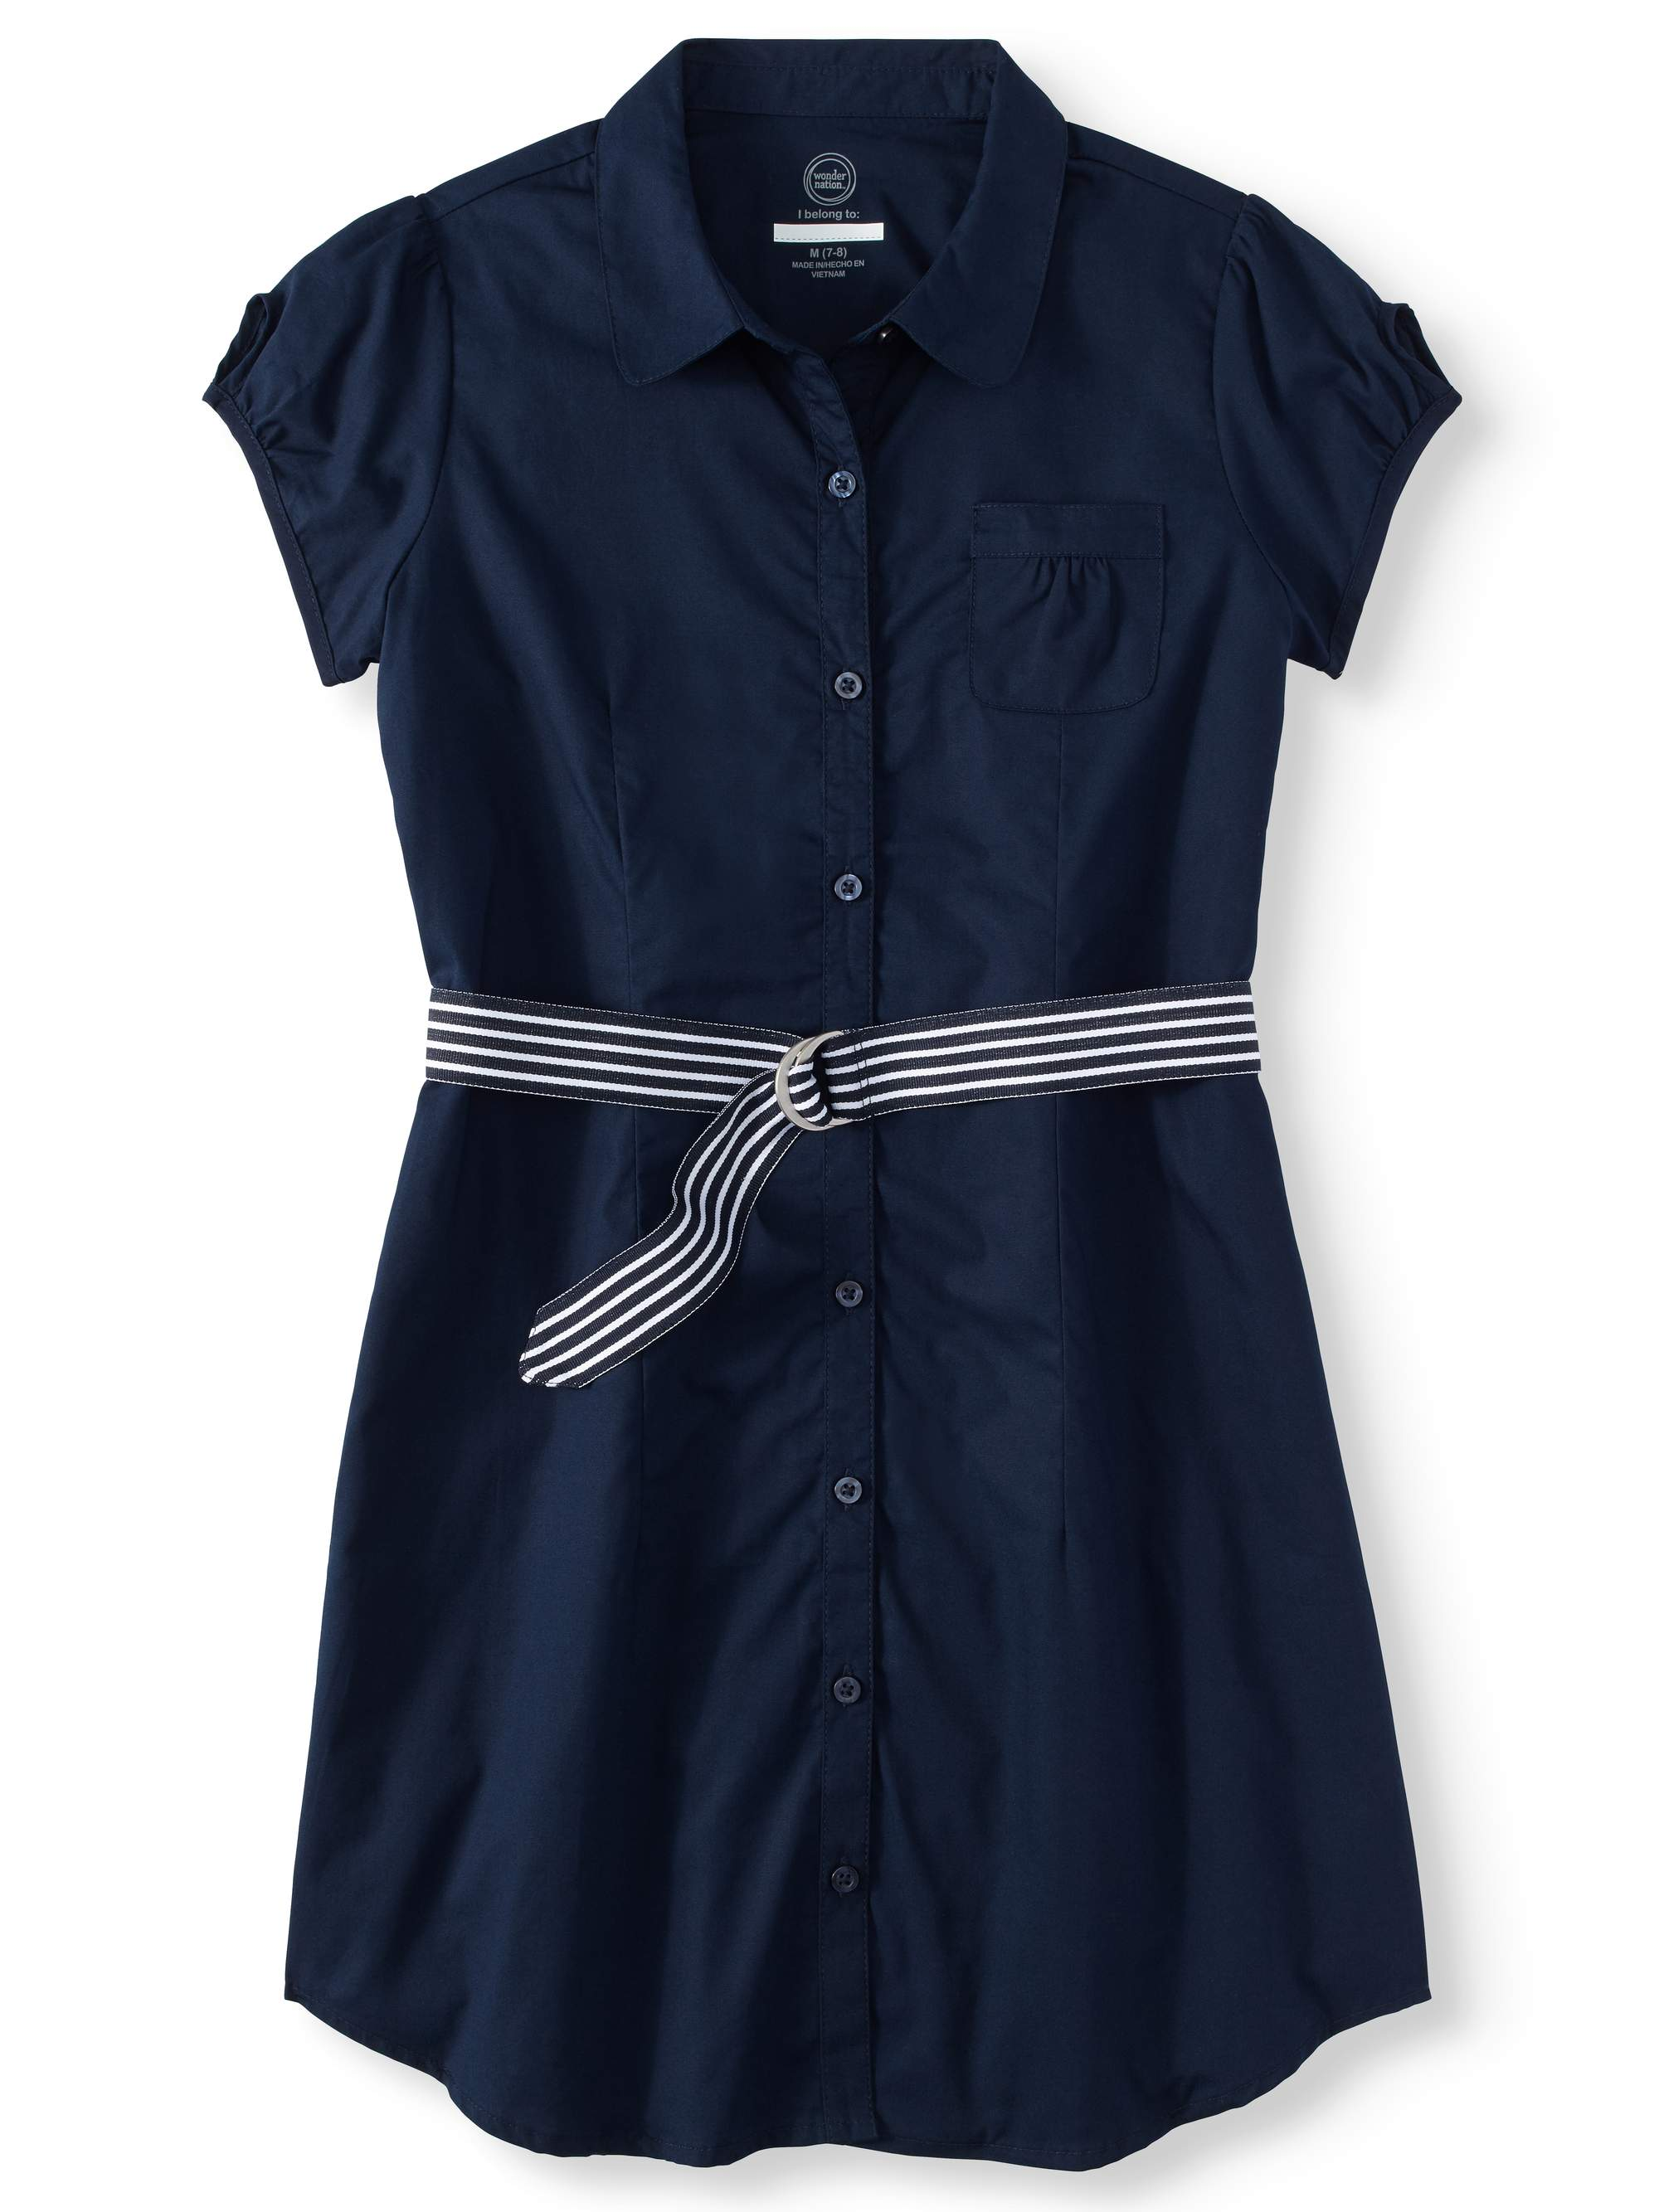 Girls School Uniform Shirt Dress